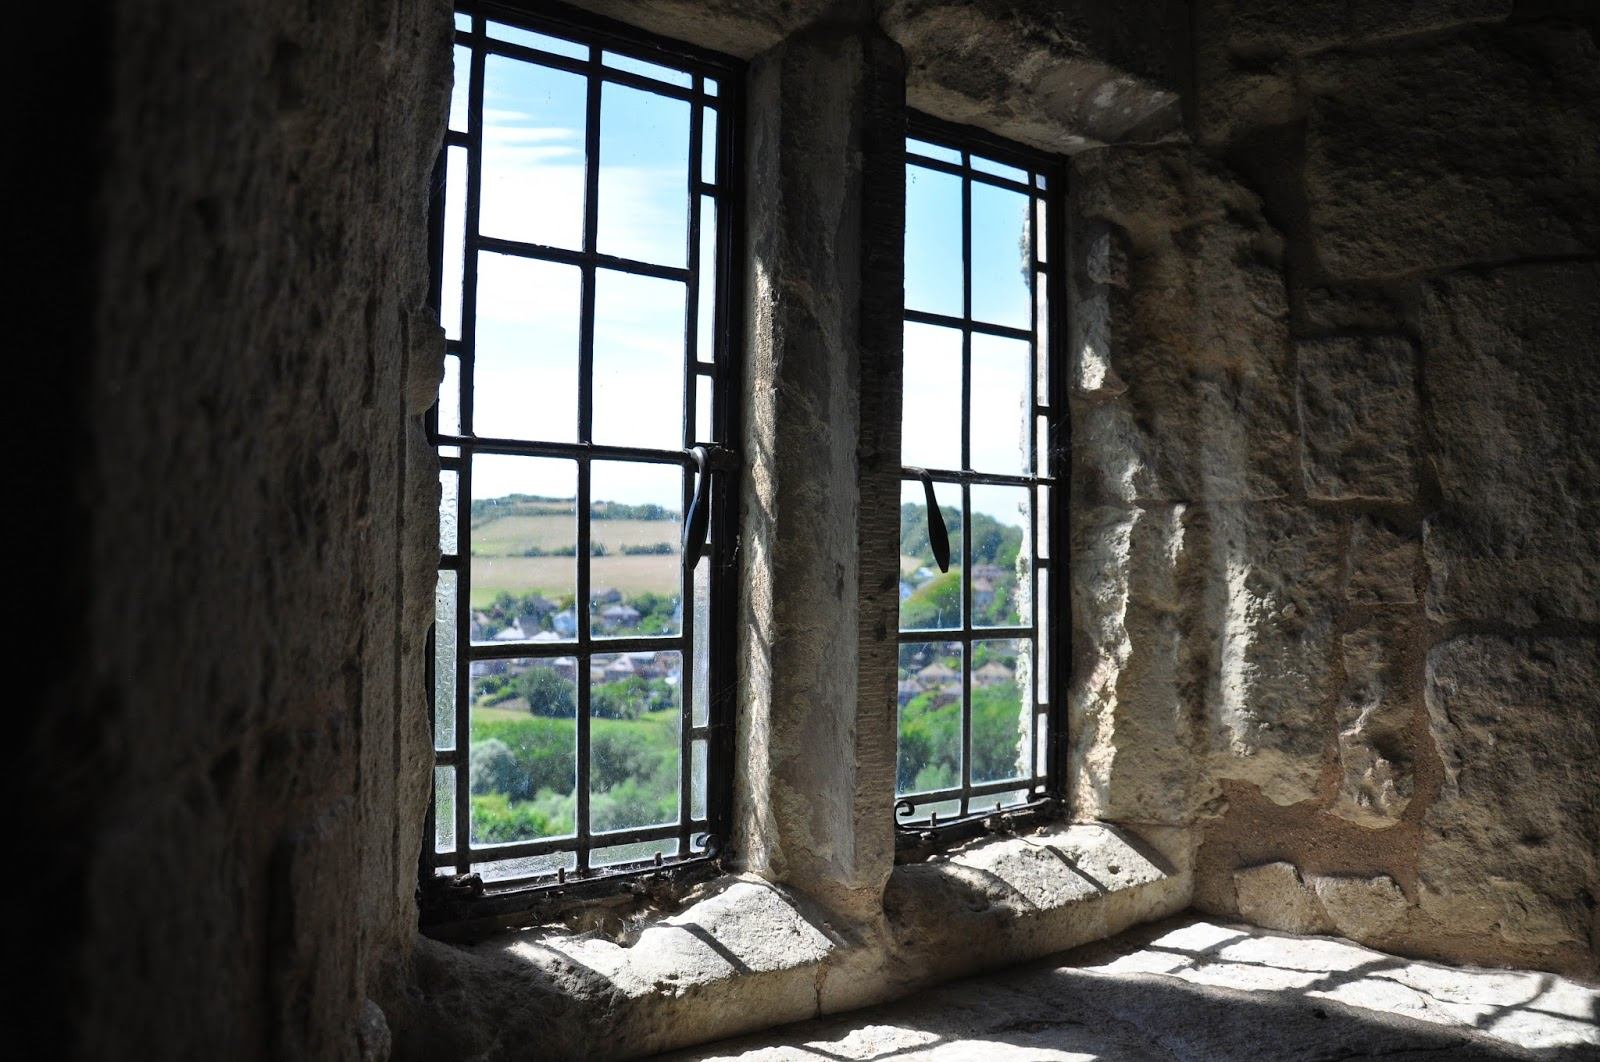 Window facing the beautiful landscape, Carisbrook Castle, Isle of Wight, UK - www.rossiwrites.com